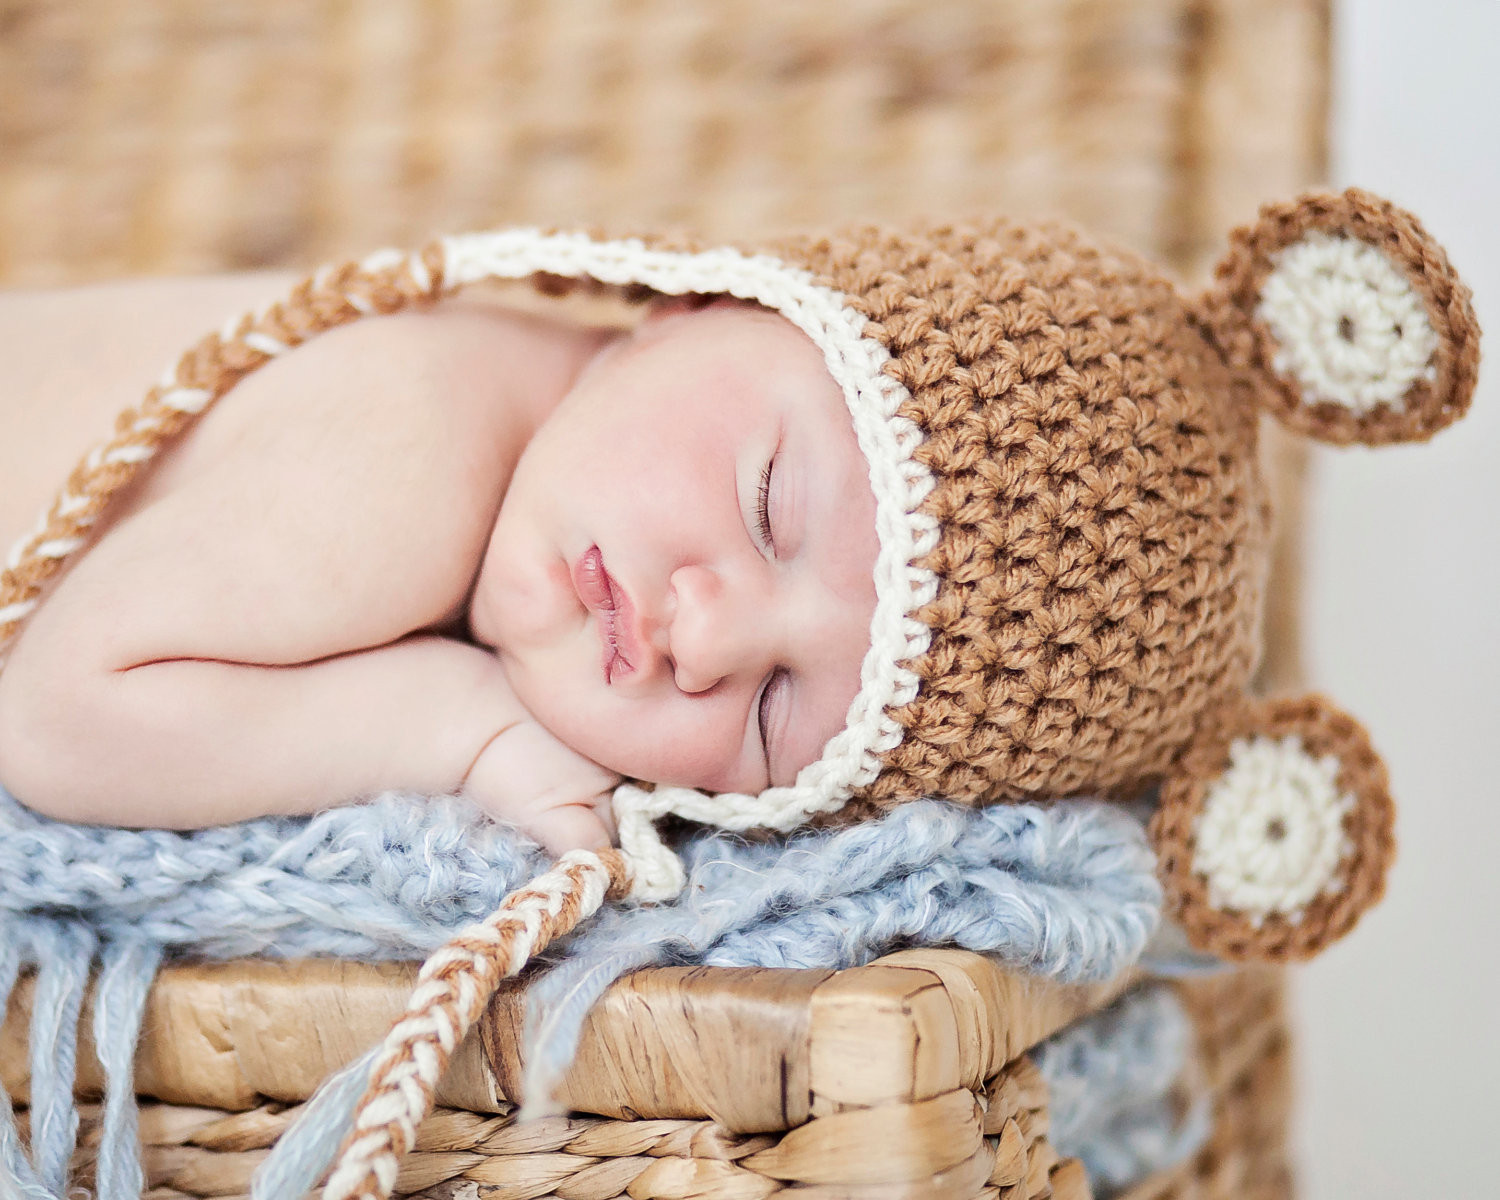 Crochet Baby Hat – Earflap Hat with Ears – Size 0 3 Months